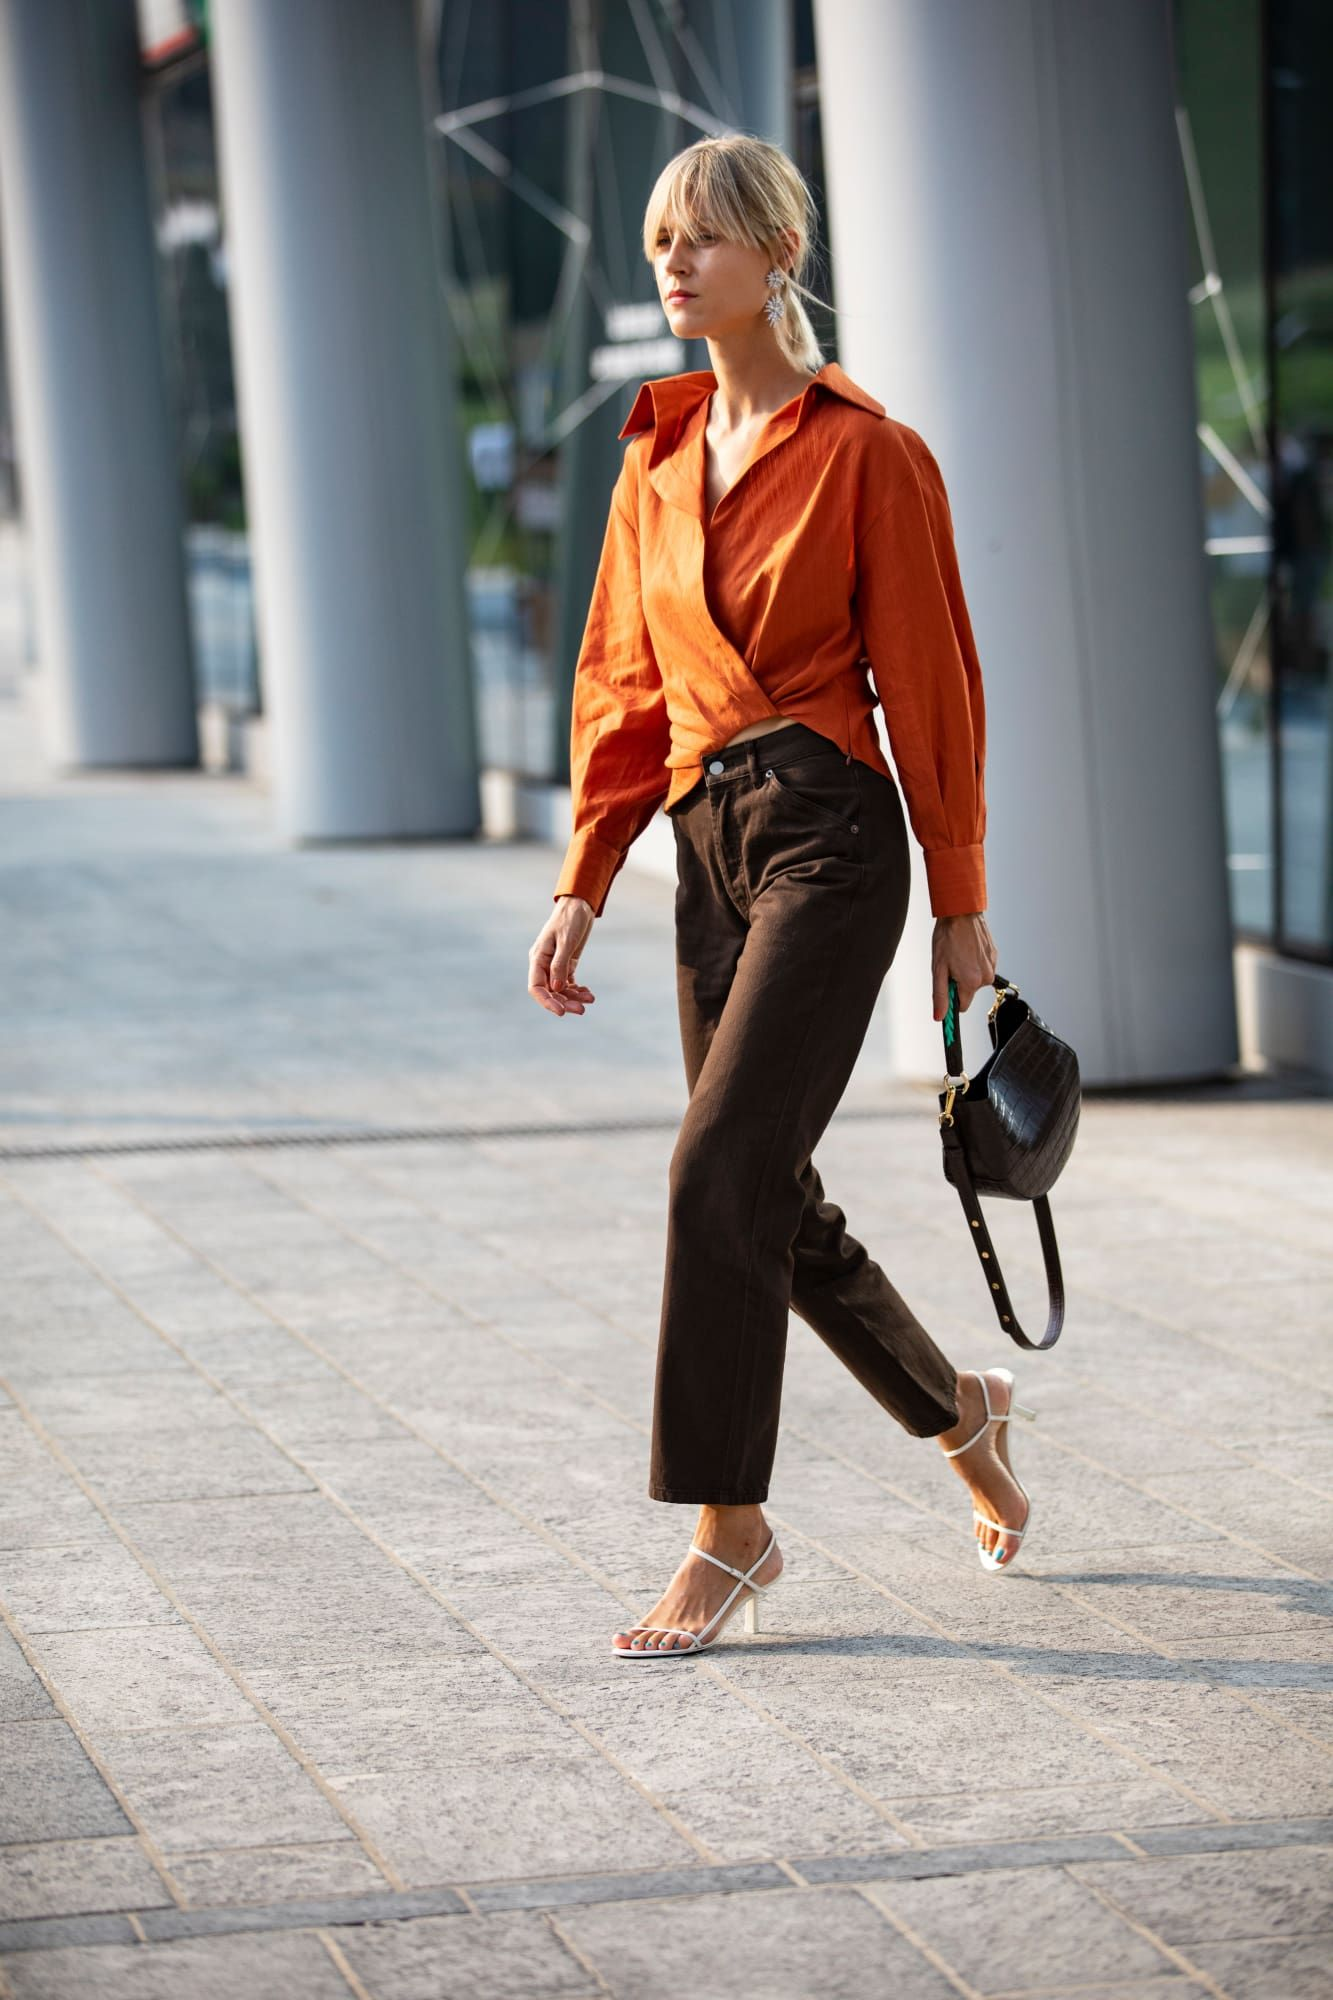 26b7e96c5667 The Best Street Style Looks From Milan Fashion Week Spring 2019 -  Fashionista